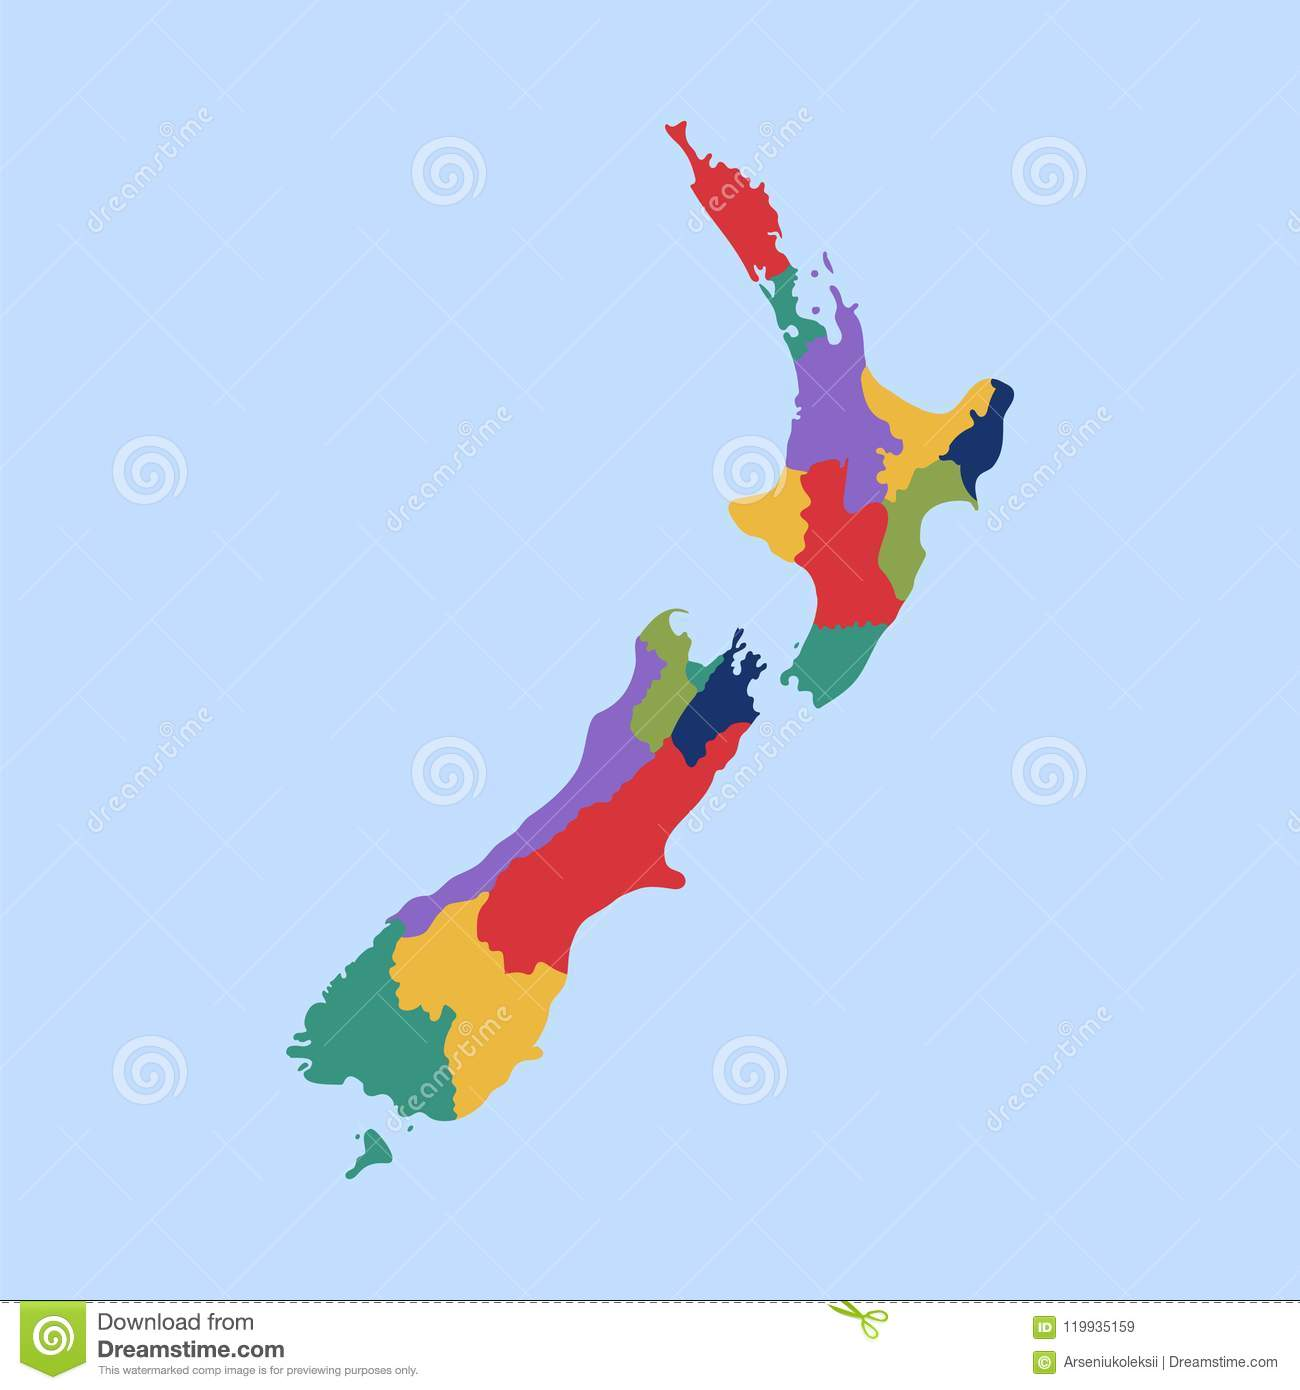 Political Map Of New Zealand.Political Map On The New Zealand With Separated States Stock Vector